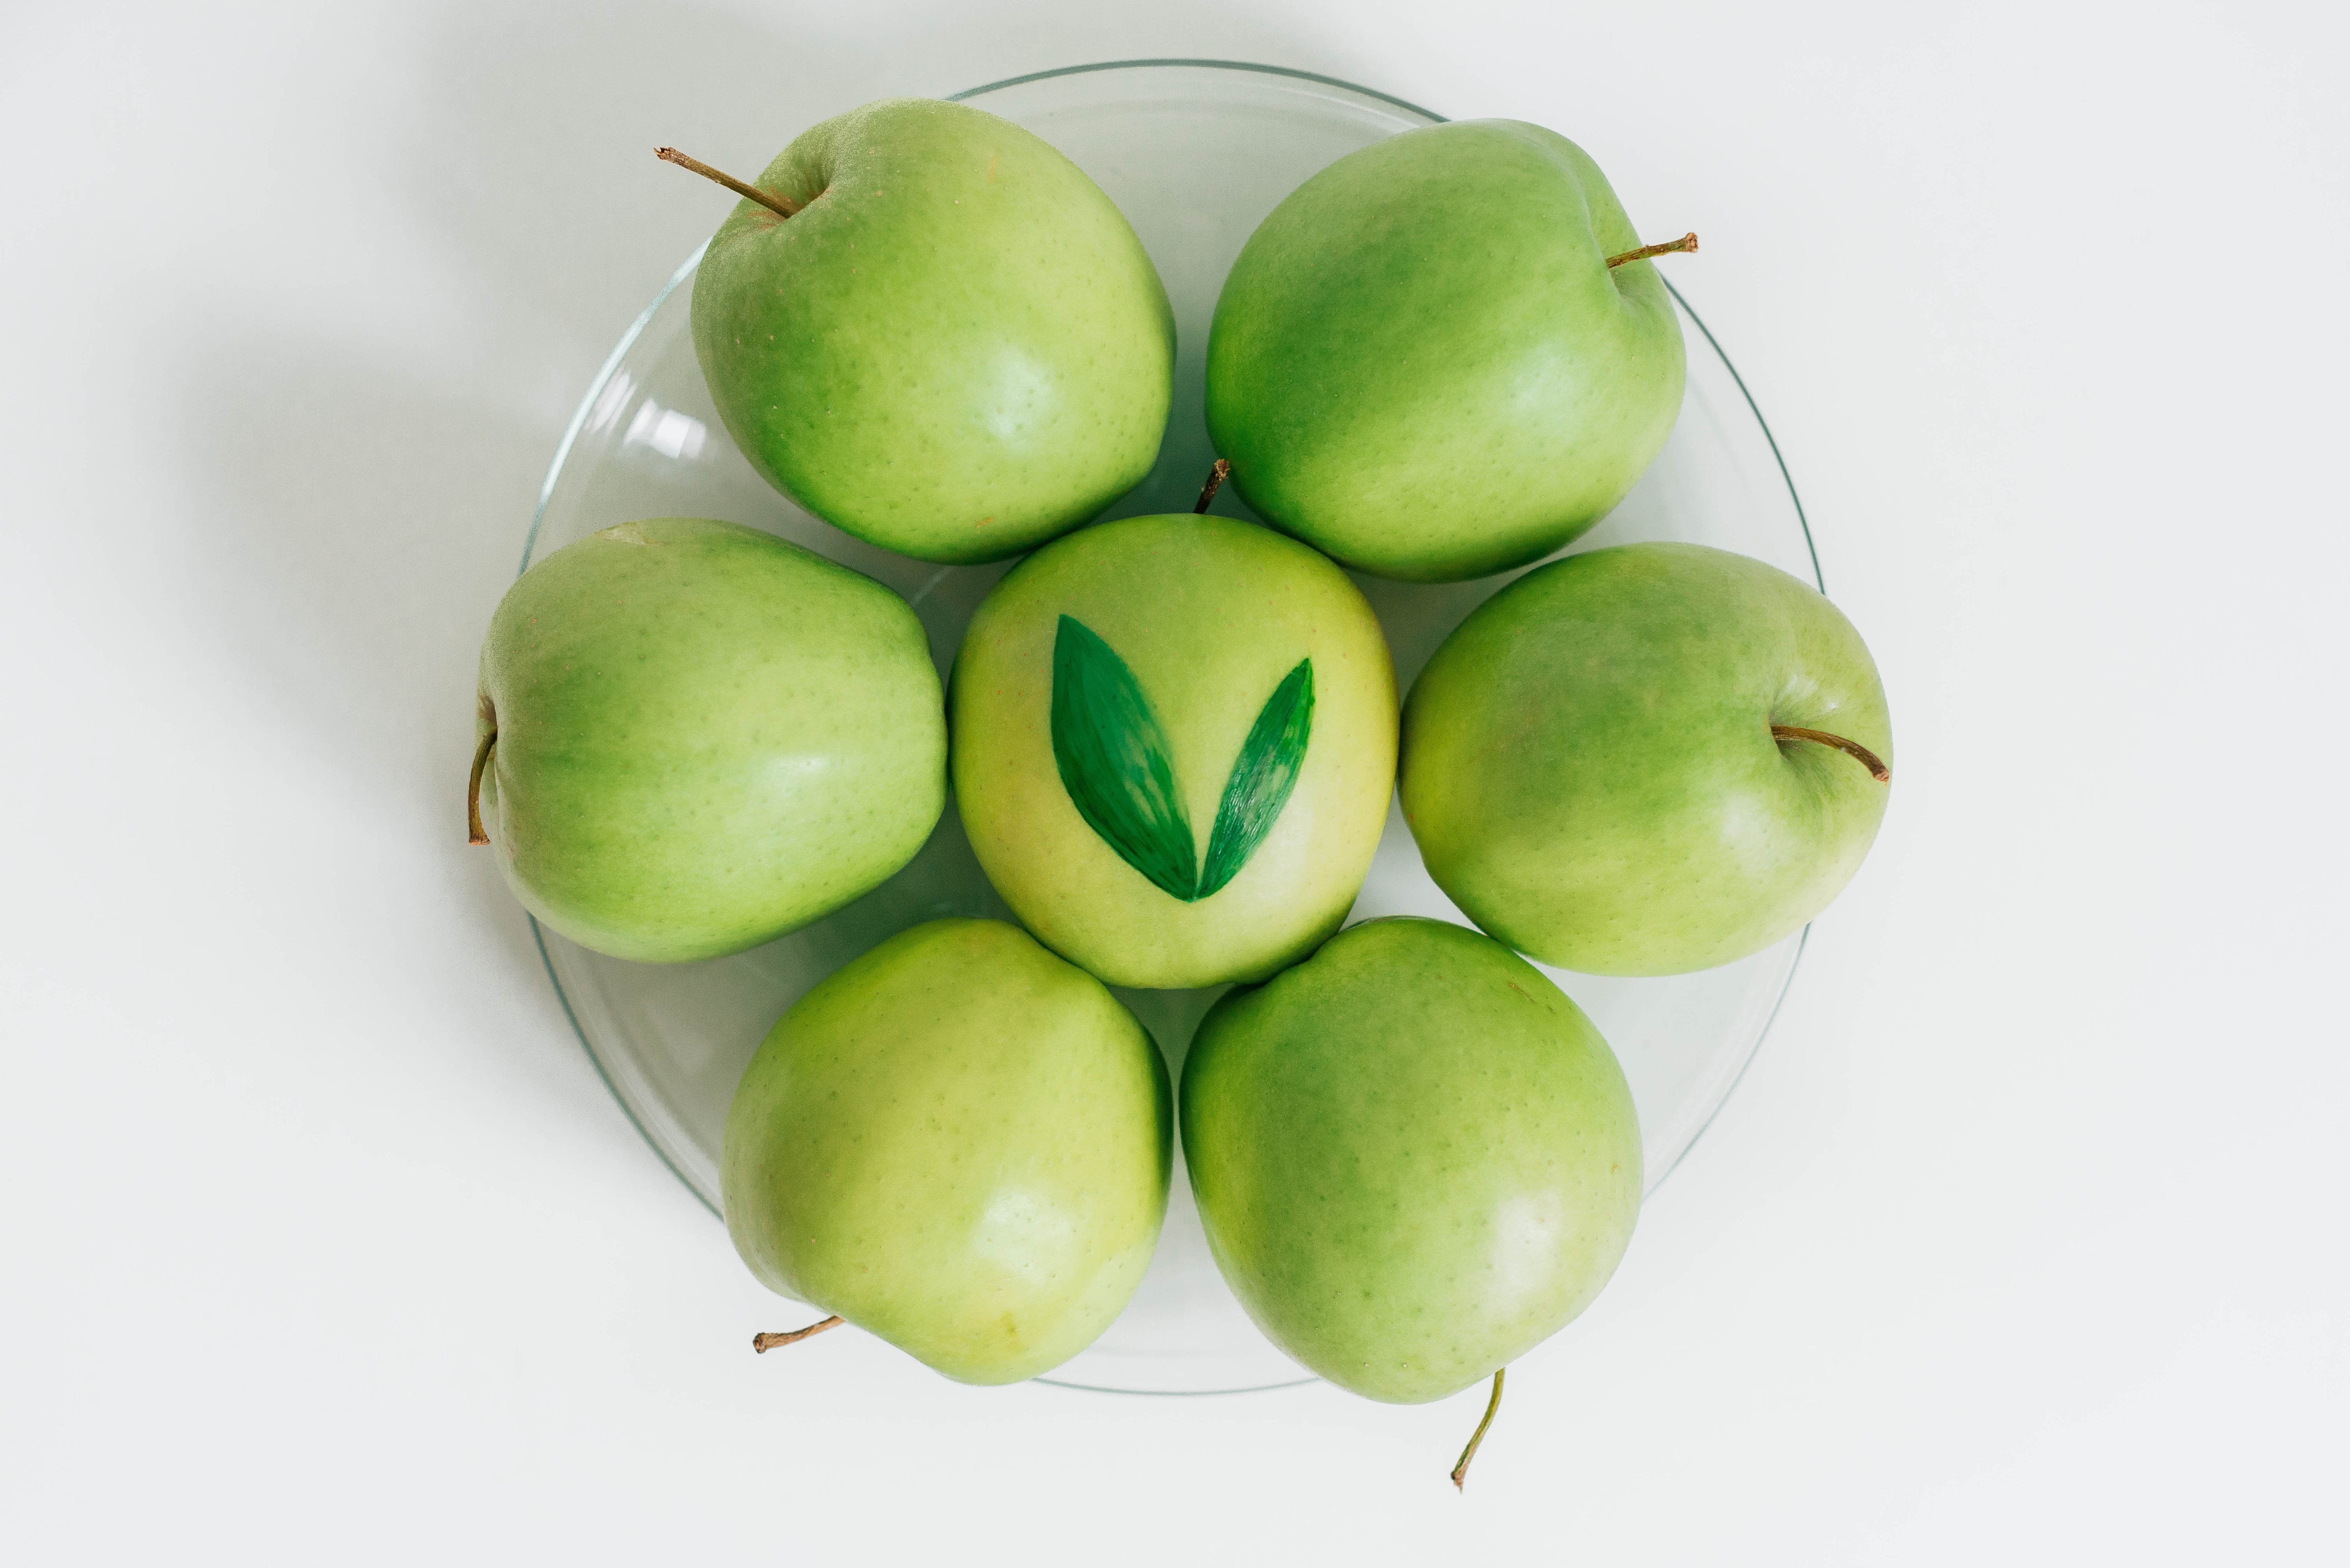 apples offer less vitamins than broccoli - a fact about nutrition